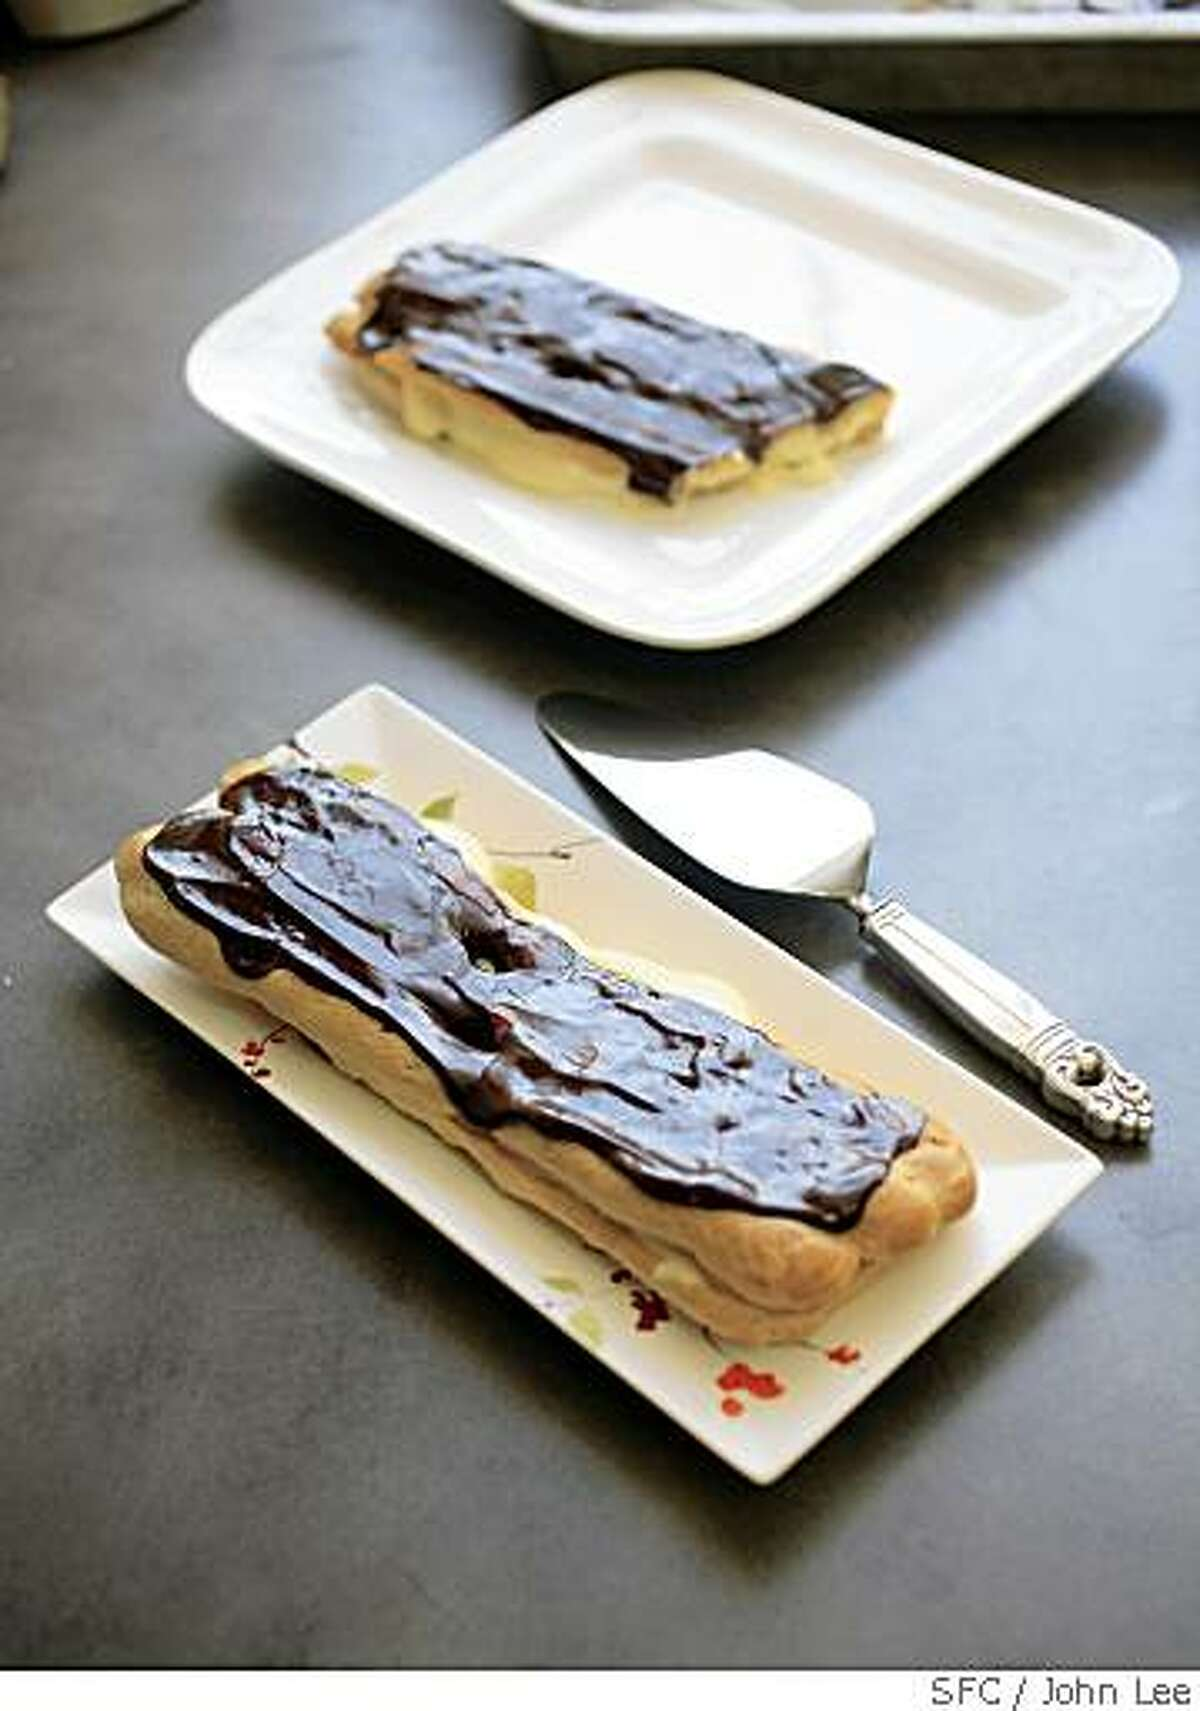 BAKER14_06_JOHNLEE.JPG May 8, 2008 - King size eclairs.BY JOHN LEE, SPECIAL TO THE CHRONICLE